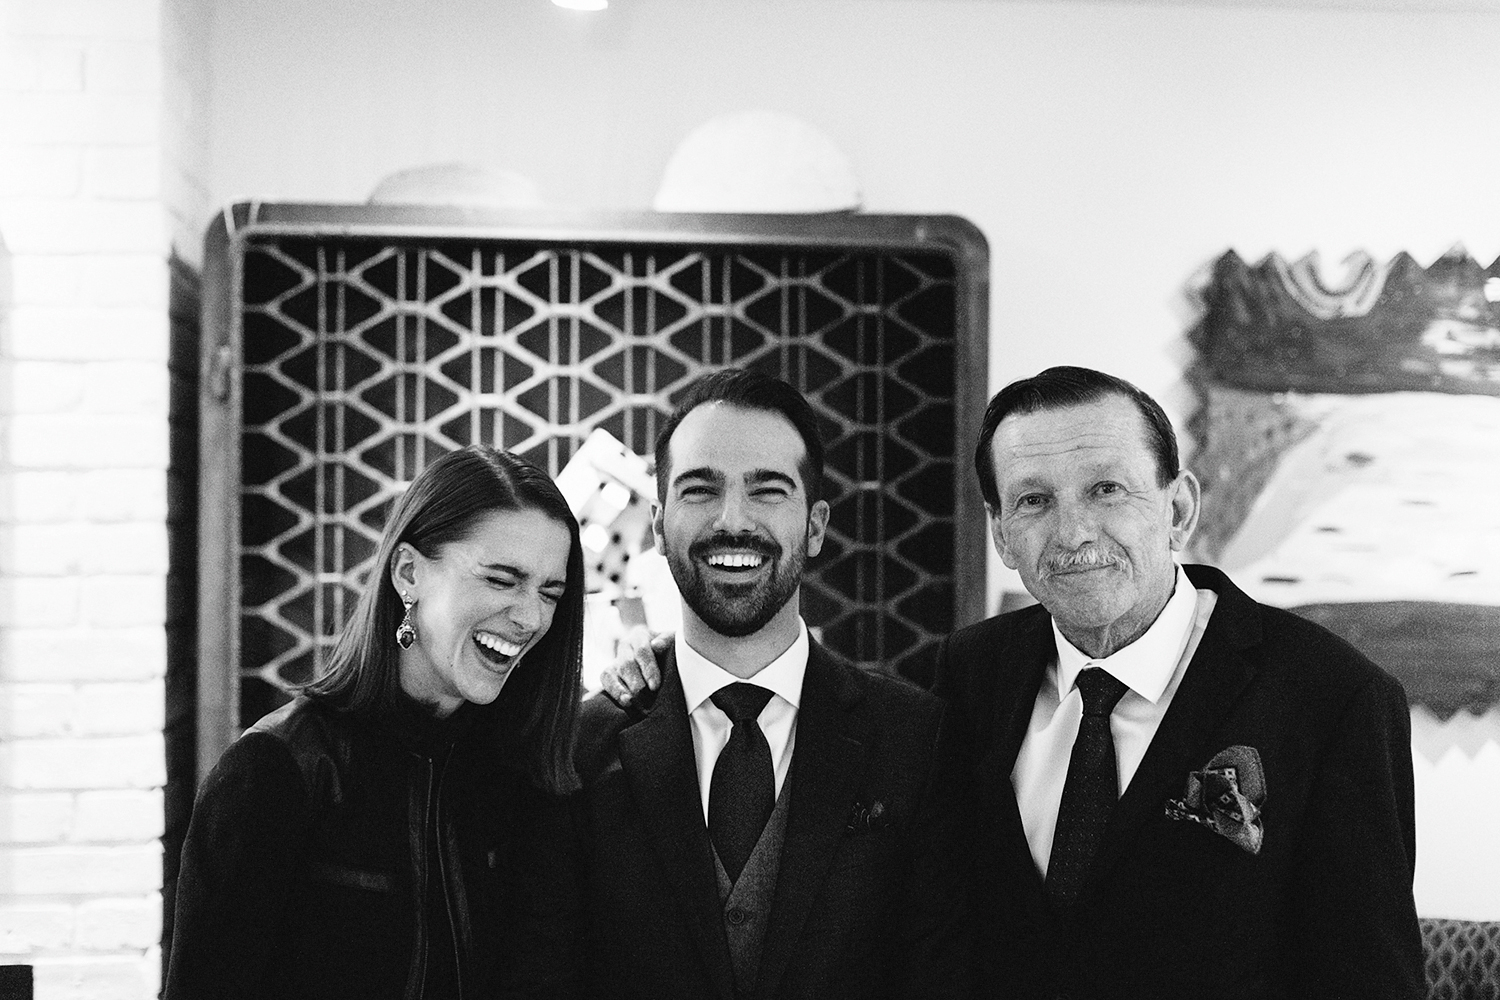 Prince-Edward-County-Wedding-Photographer-Drake-Devonshire-Elopement-Ryanne-Hollies-Photography-junebug-weddings-best-of-the-best-reception-in-playroom-photobooth-cabin-cottage-picture-frames-bw.jpg